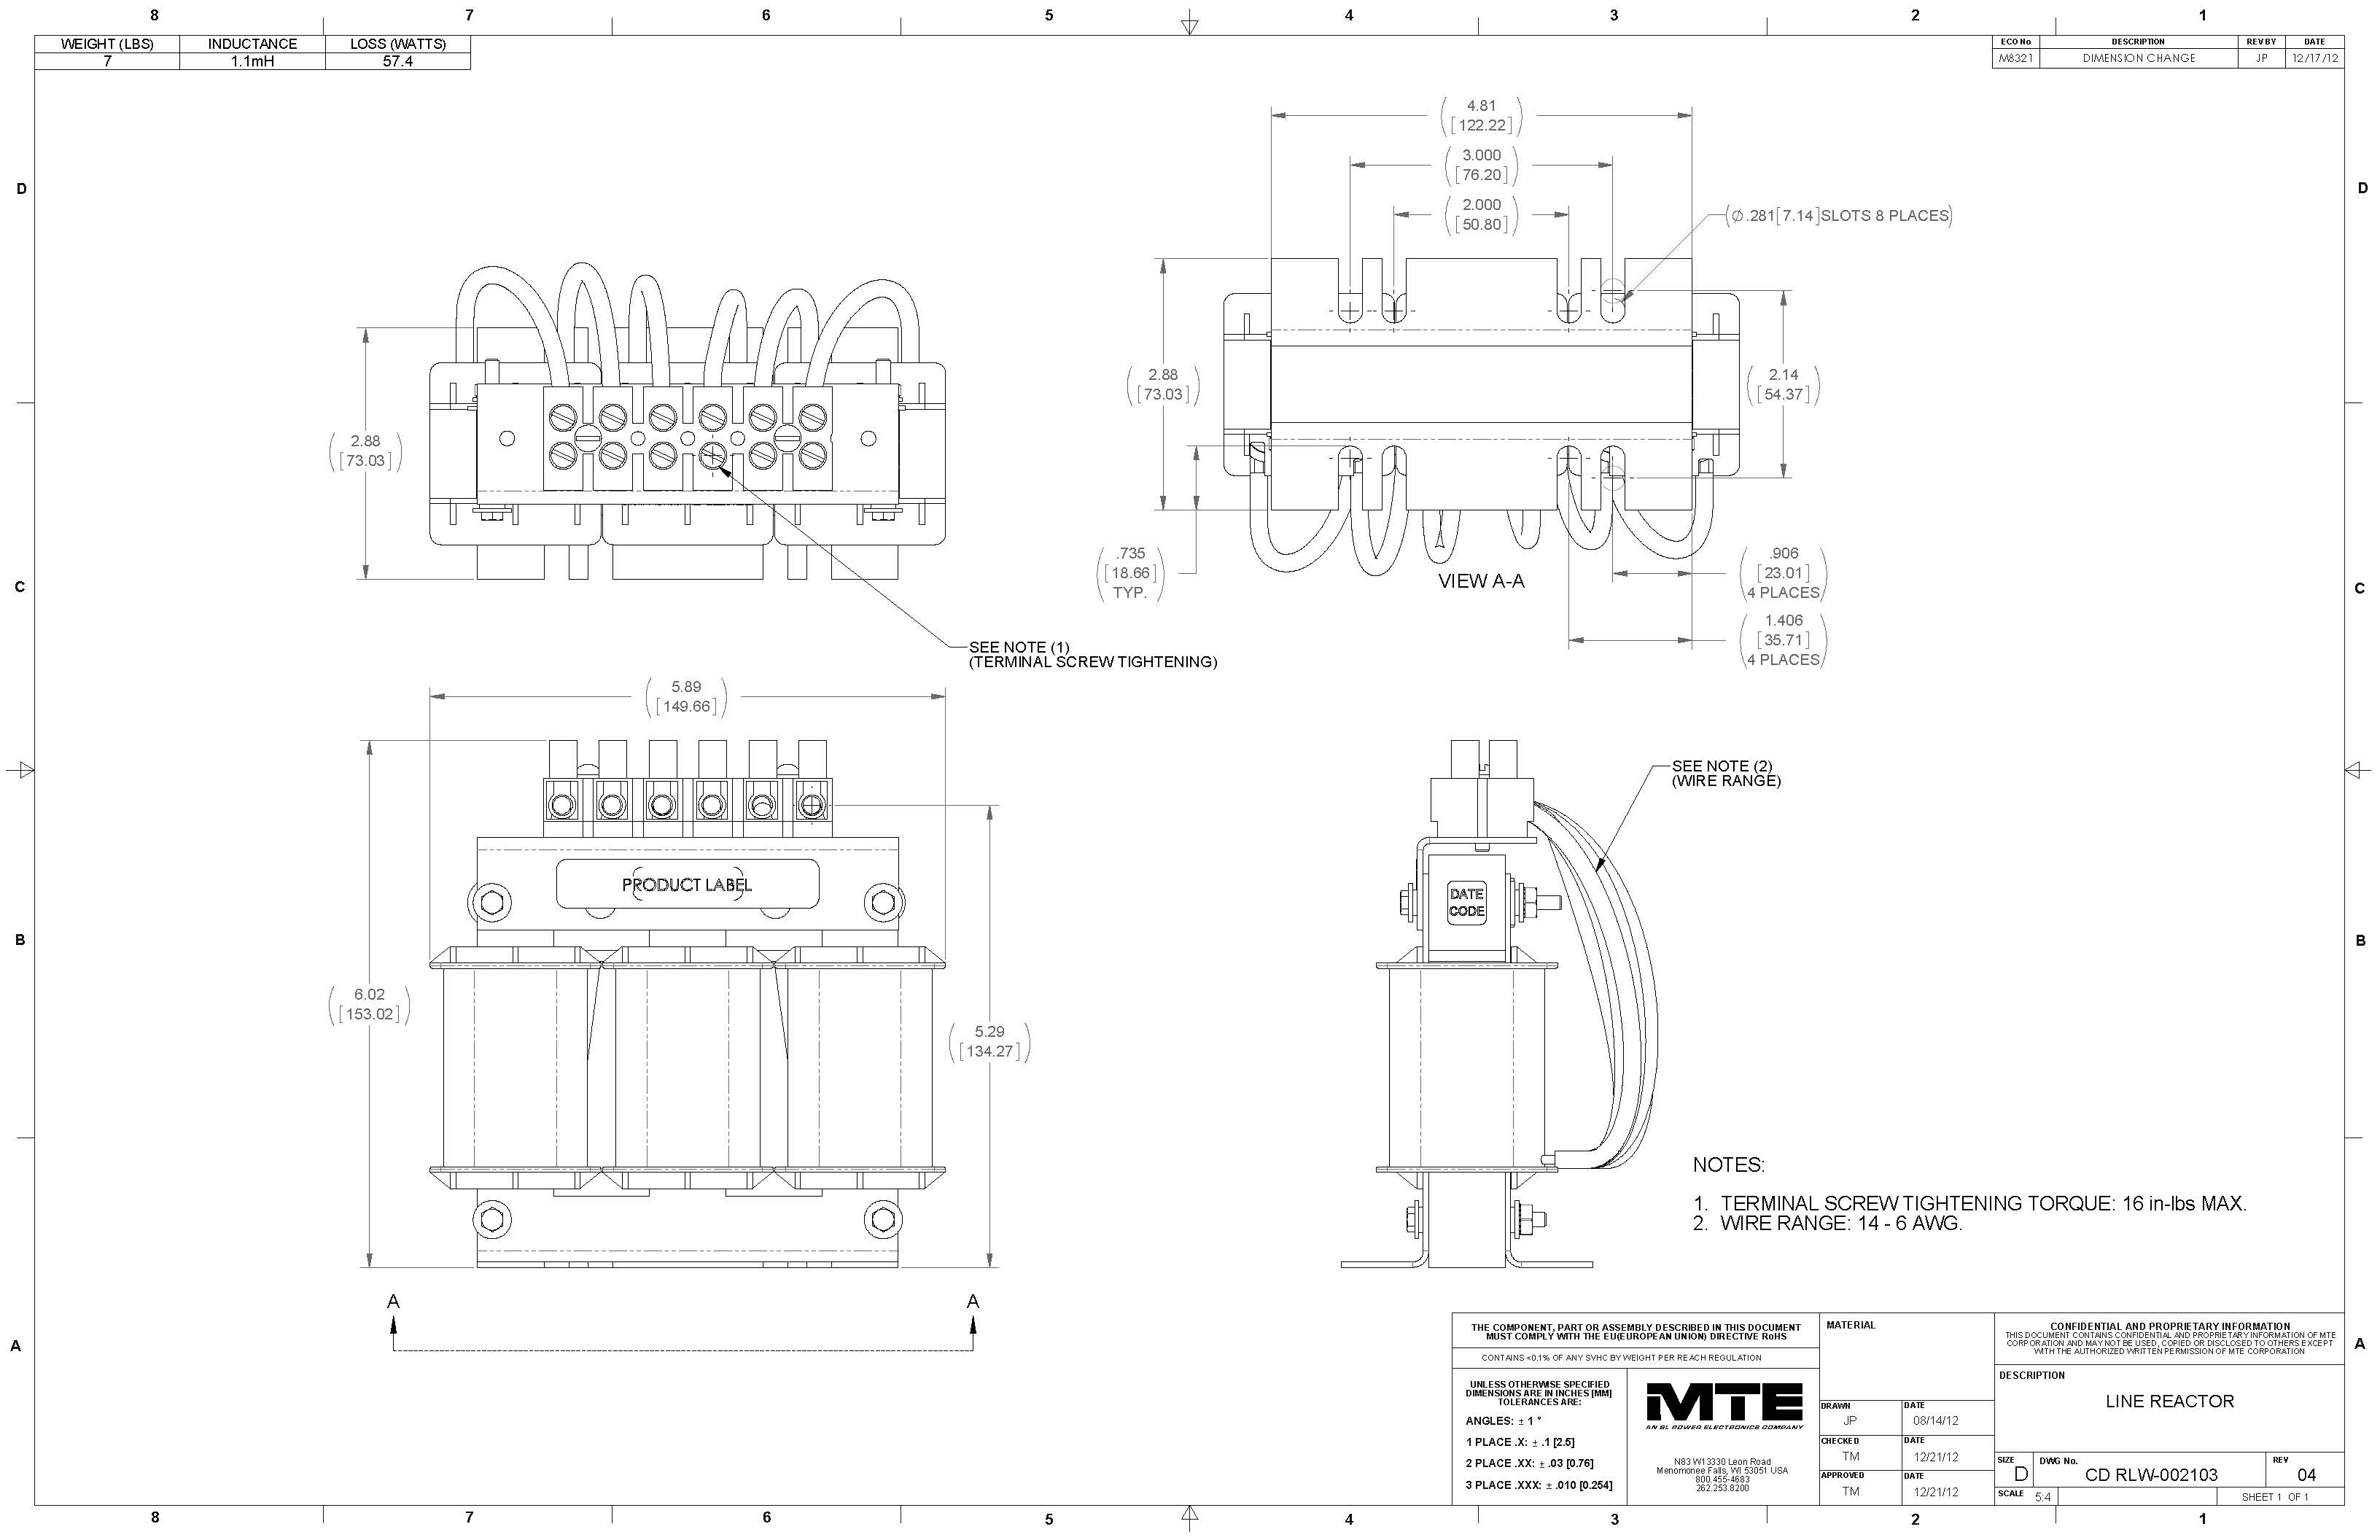 Image of an MTE Reactor RLW-002103